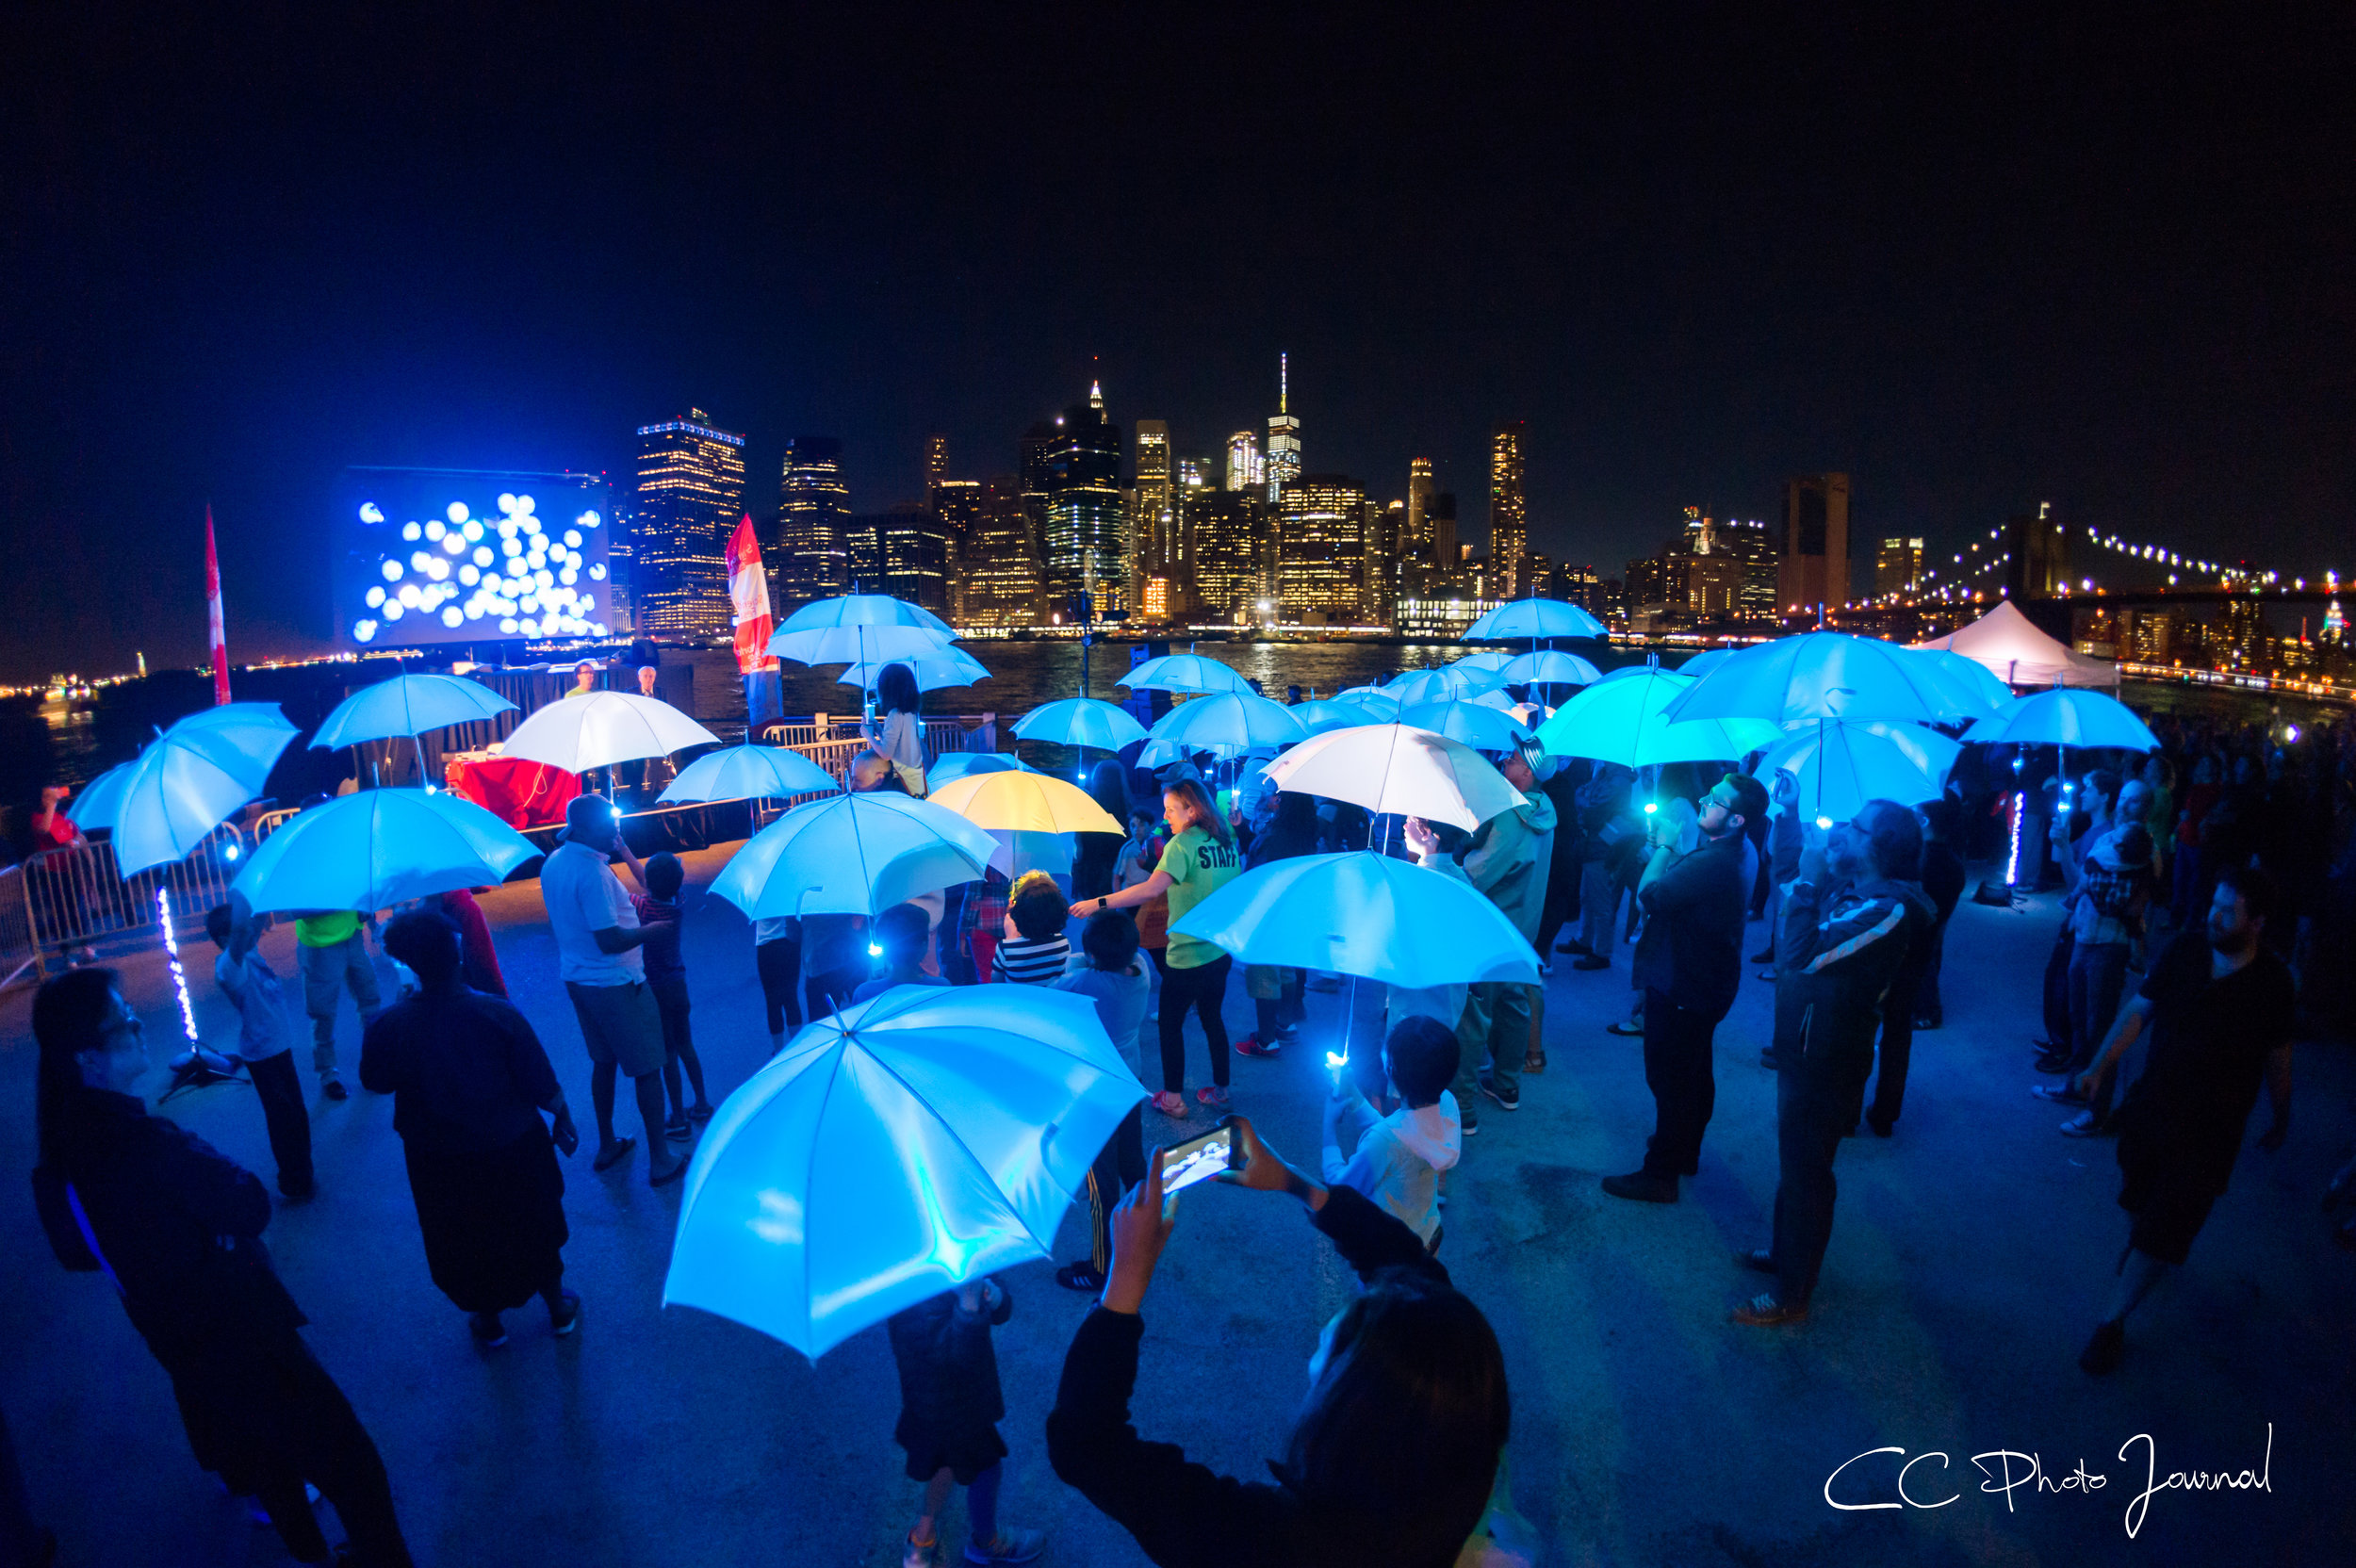 "<a href=""https://pilobolus.org/umbrella-project"">Umbrella Project</a>"